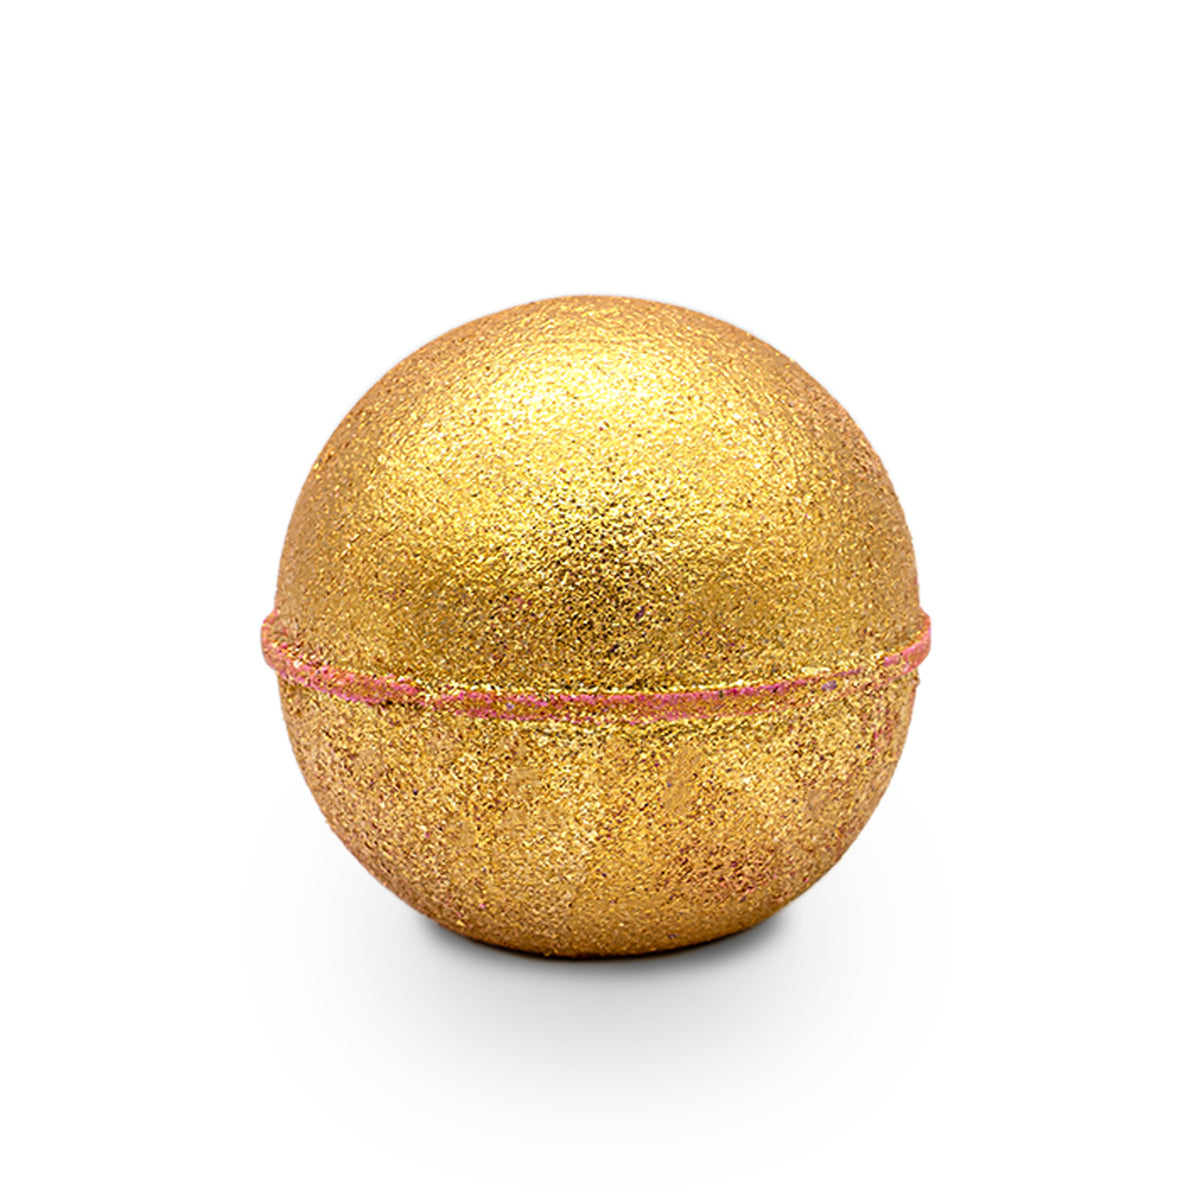 Gold Spell 100mg CBD Bath Bomb